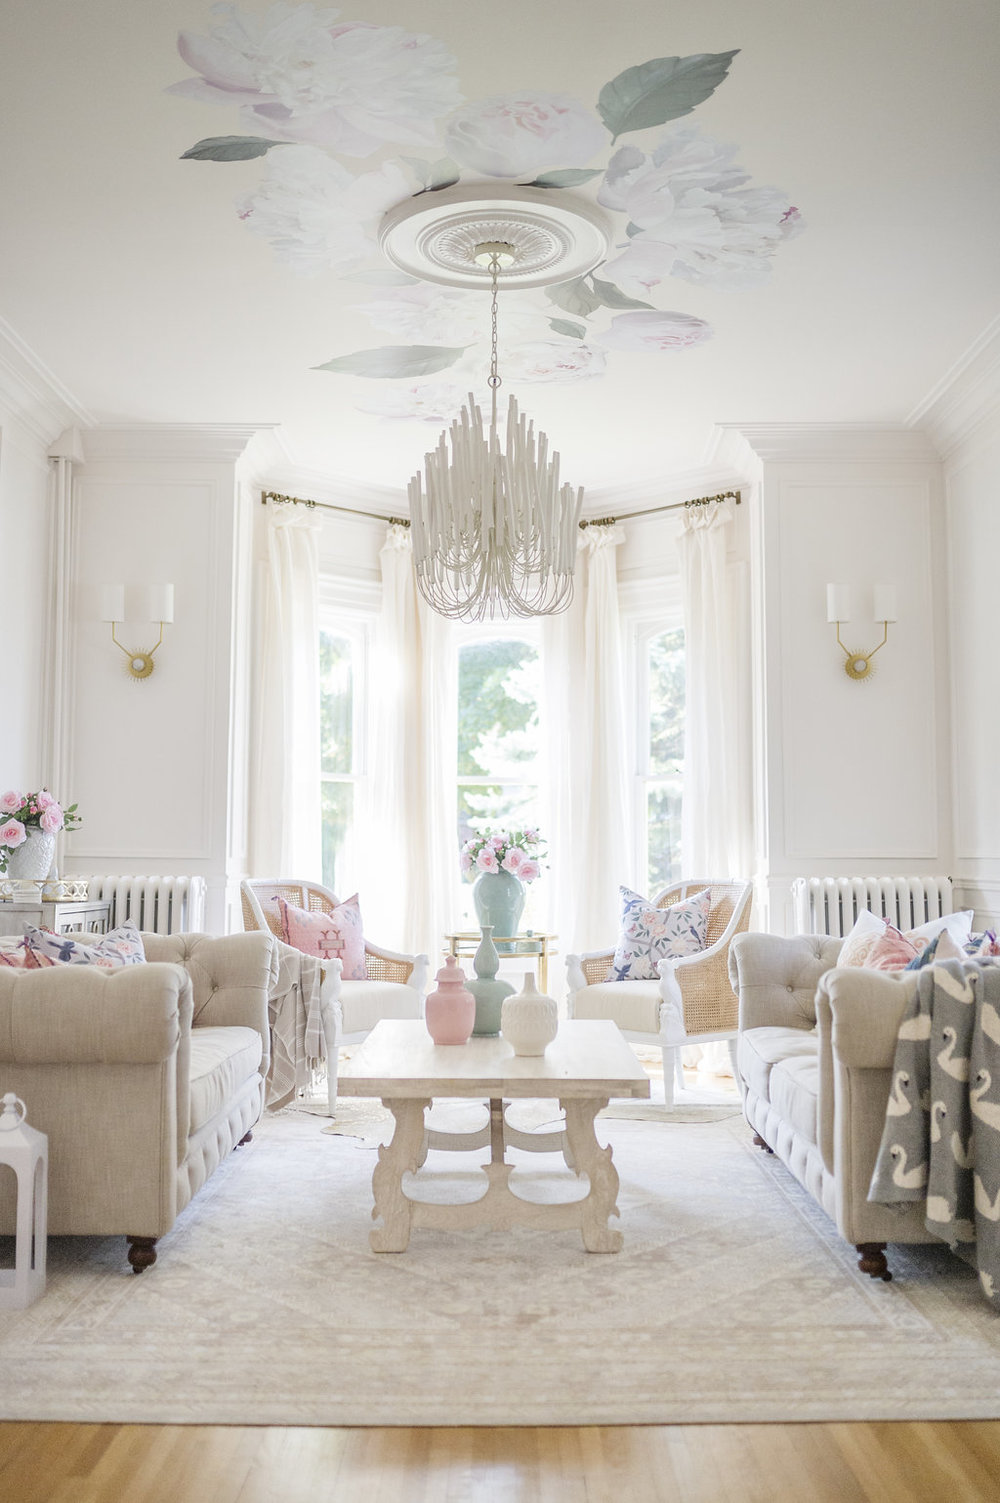 Photo Compliments of    Vicki Bartel Photography    for    Stylish & Historic Boutique Home on Main St